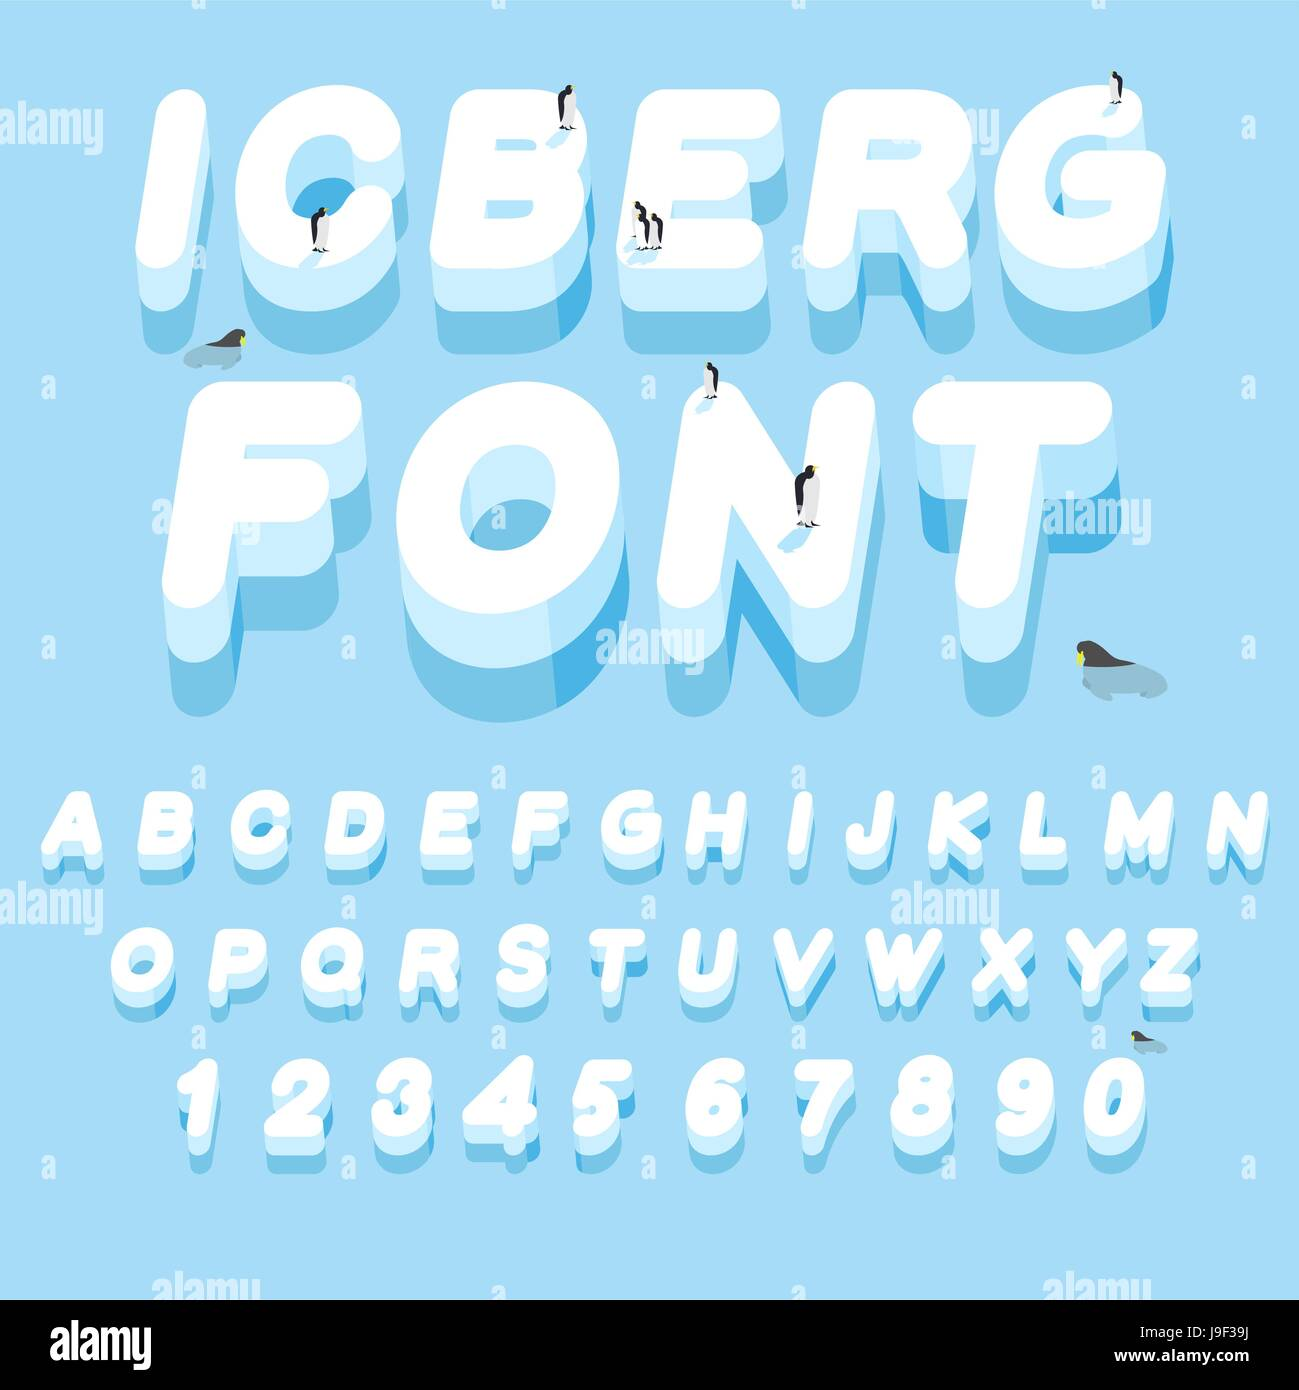 Iceberg Font 3d Letters Of Ice Ice Alphabet Letter Abc Of Snow